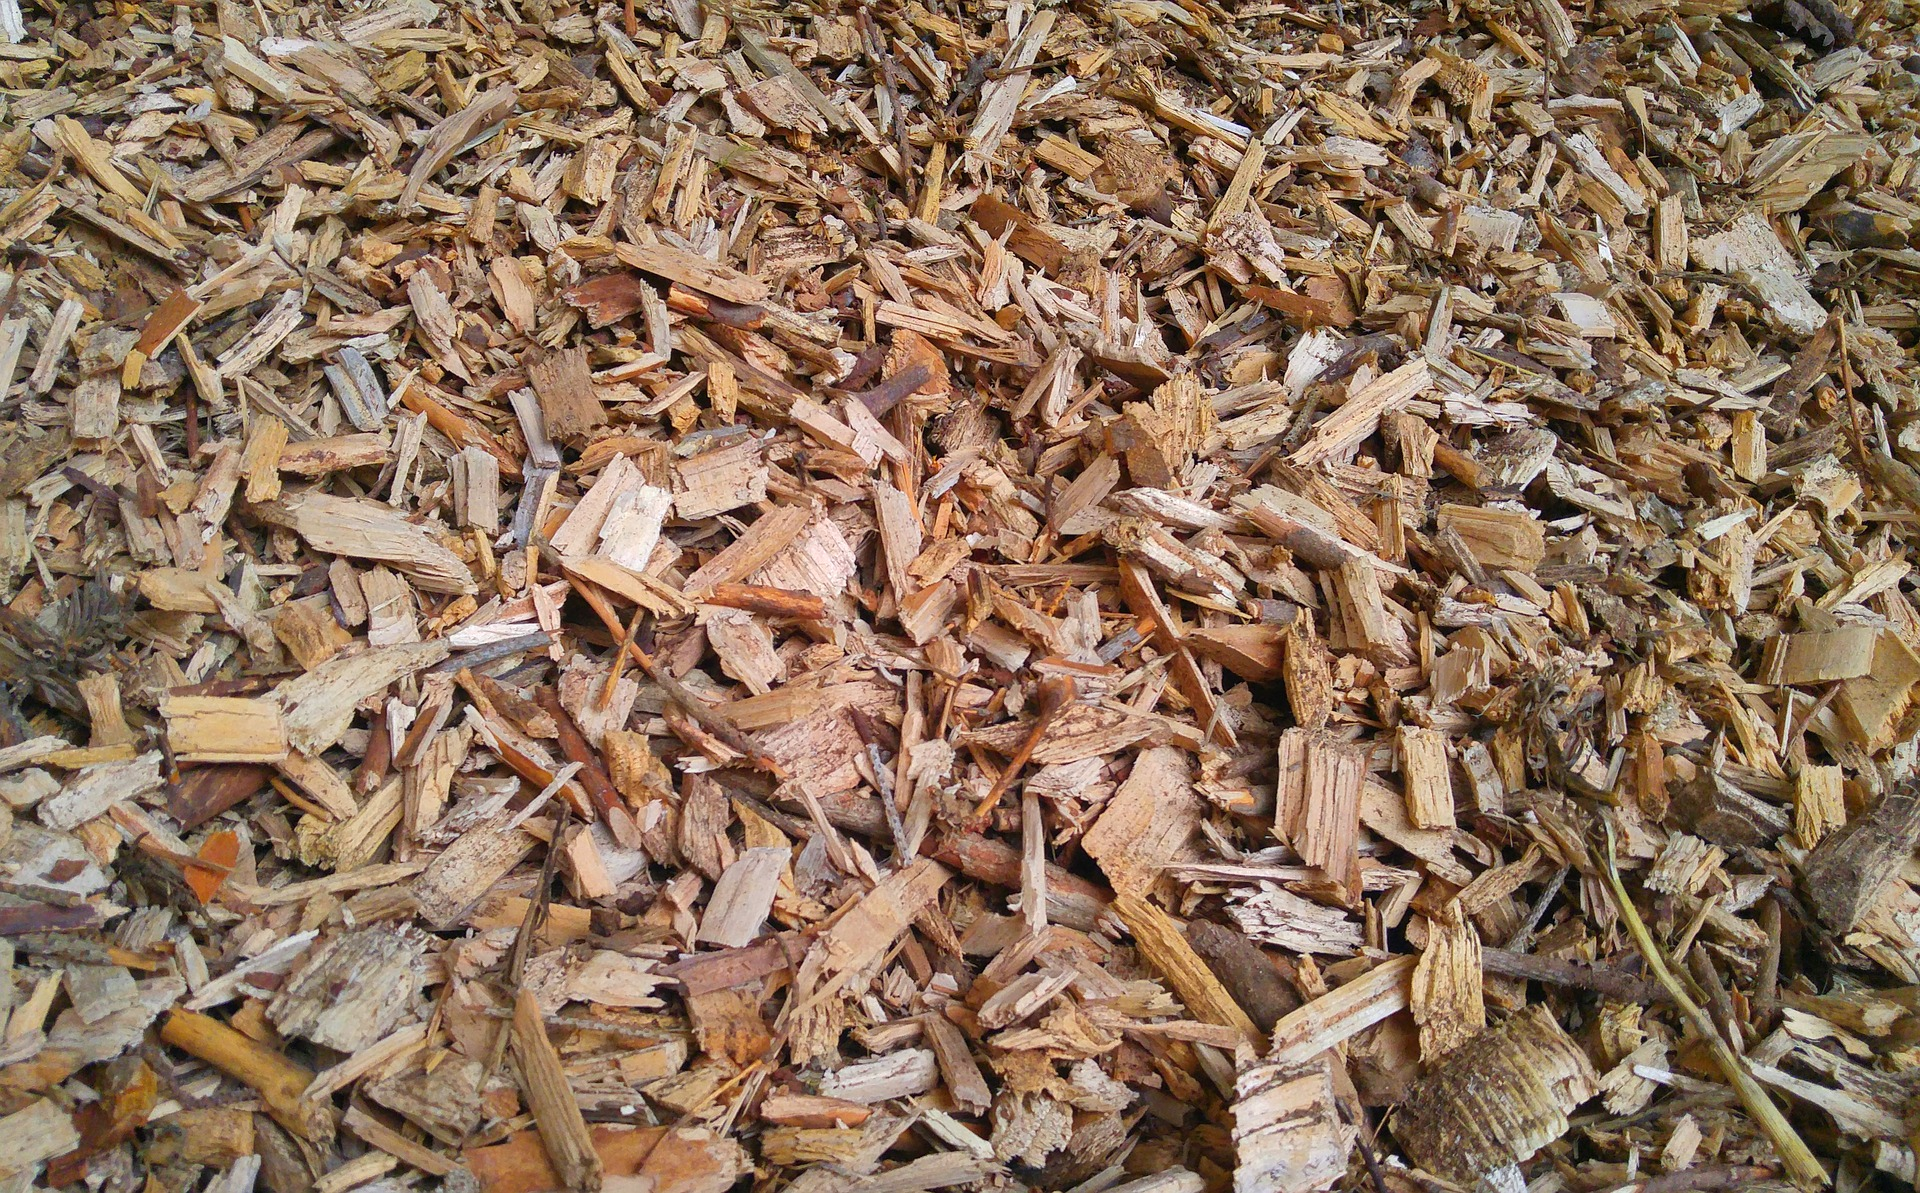 wood-chips-2030653_1920_pixabay.jpg